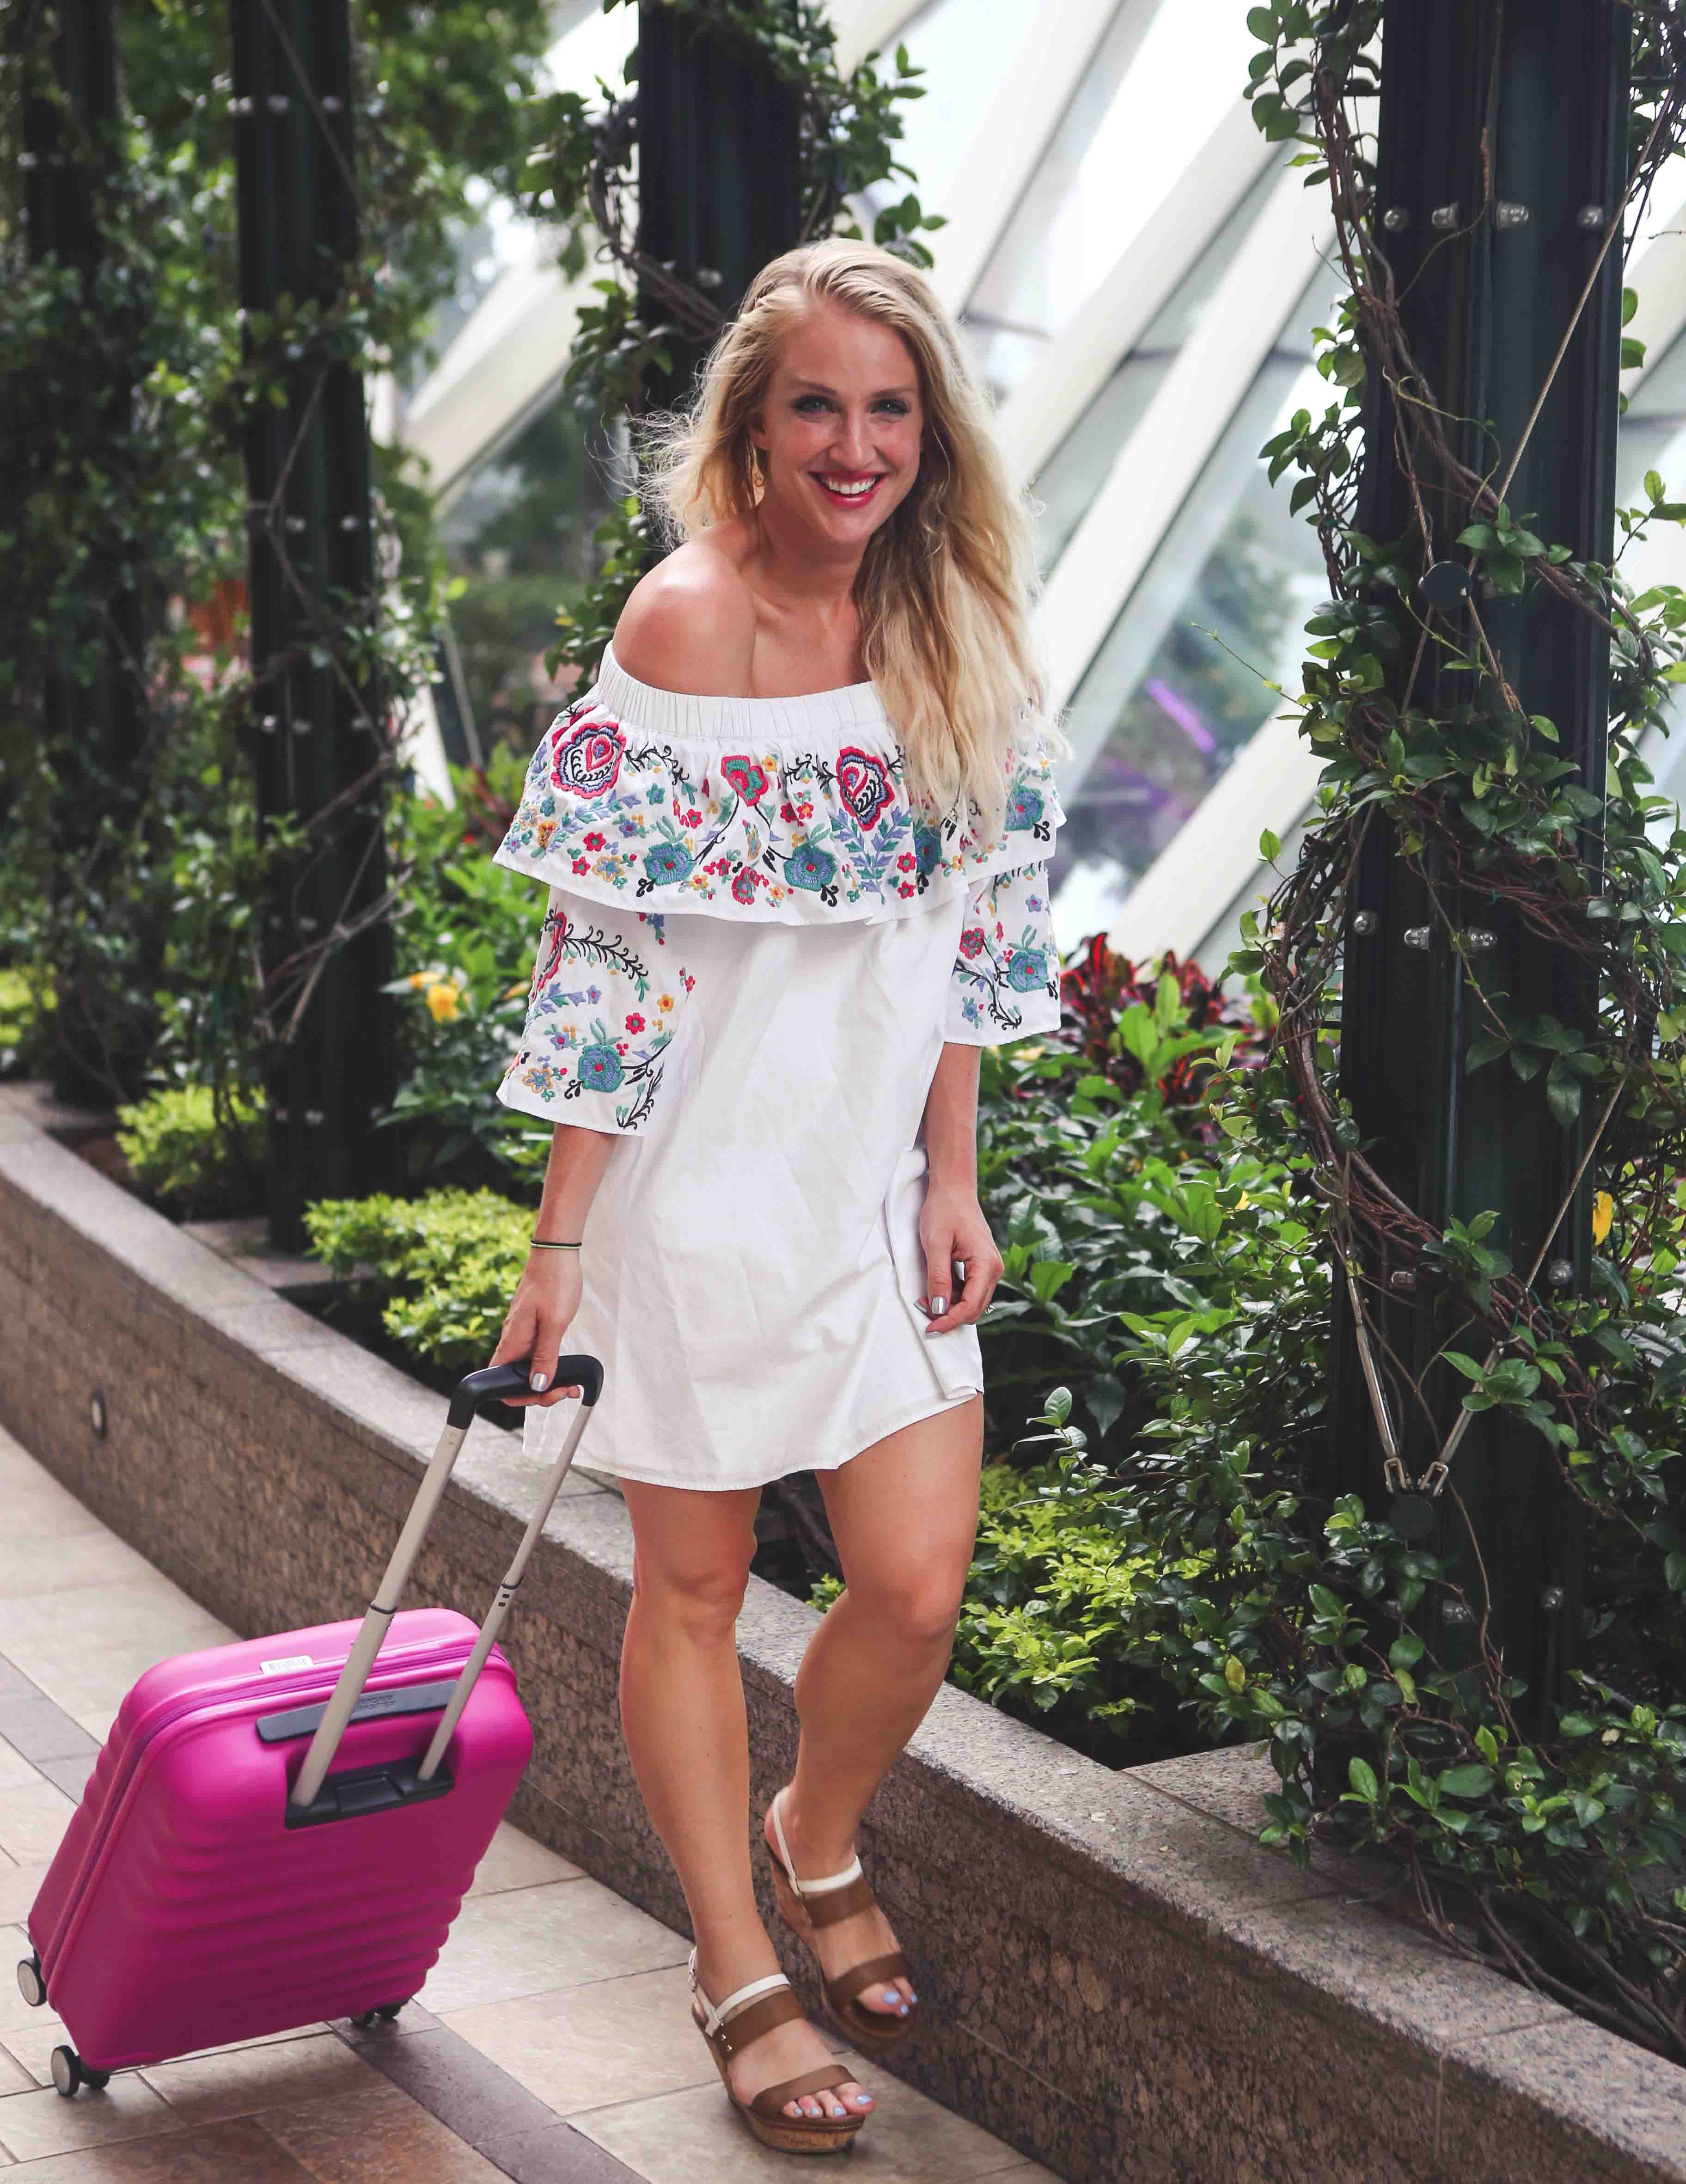 Packing Checklist for Girls' Getaway by Atlanta fitness blogger Happily Hughes